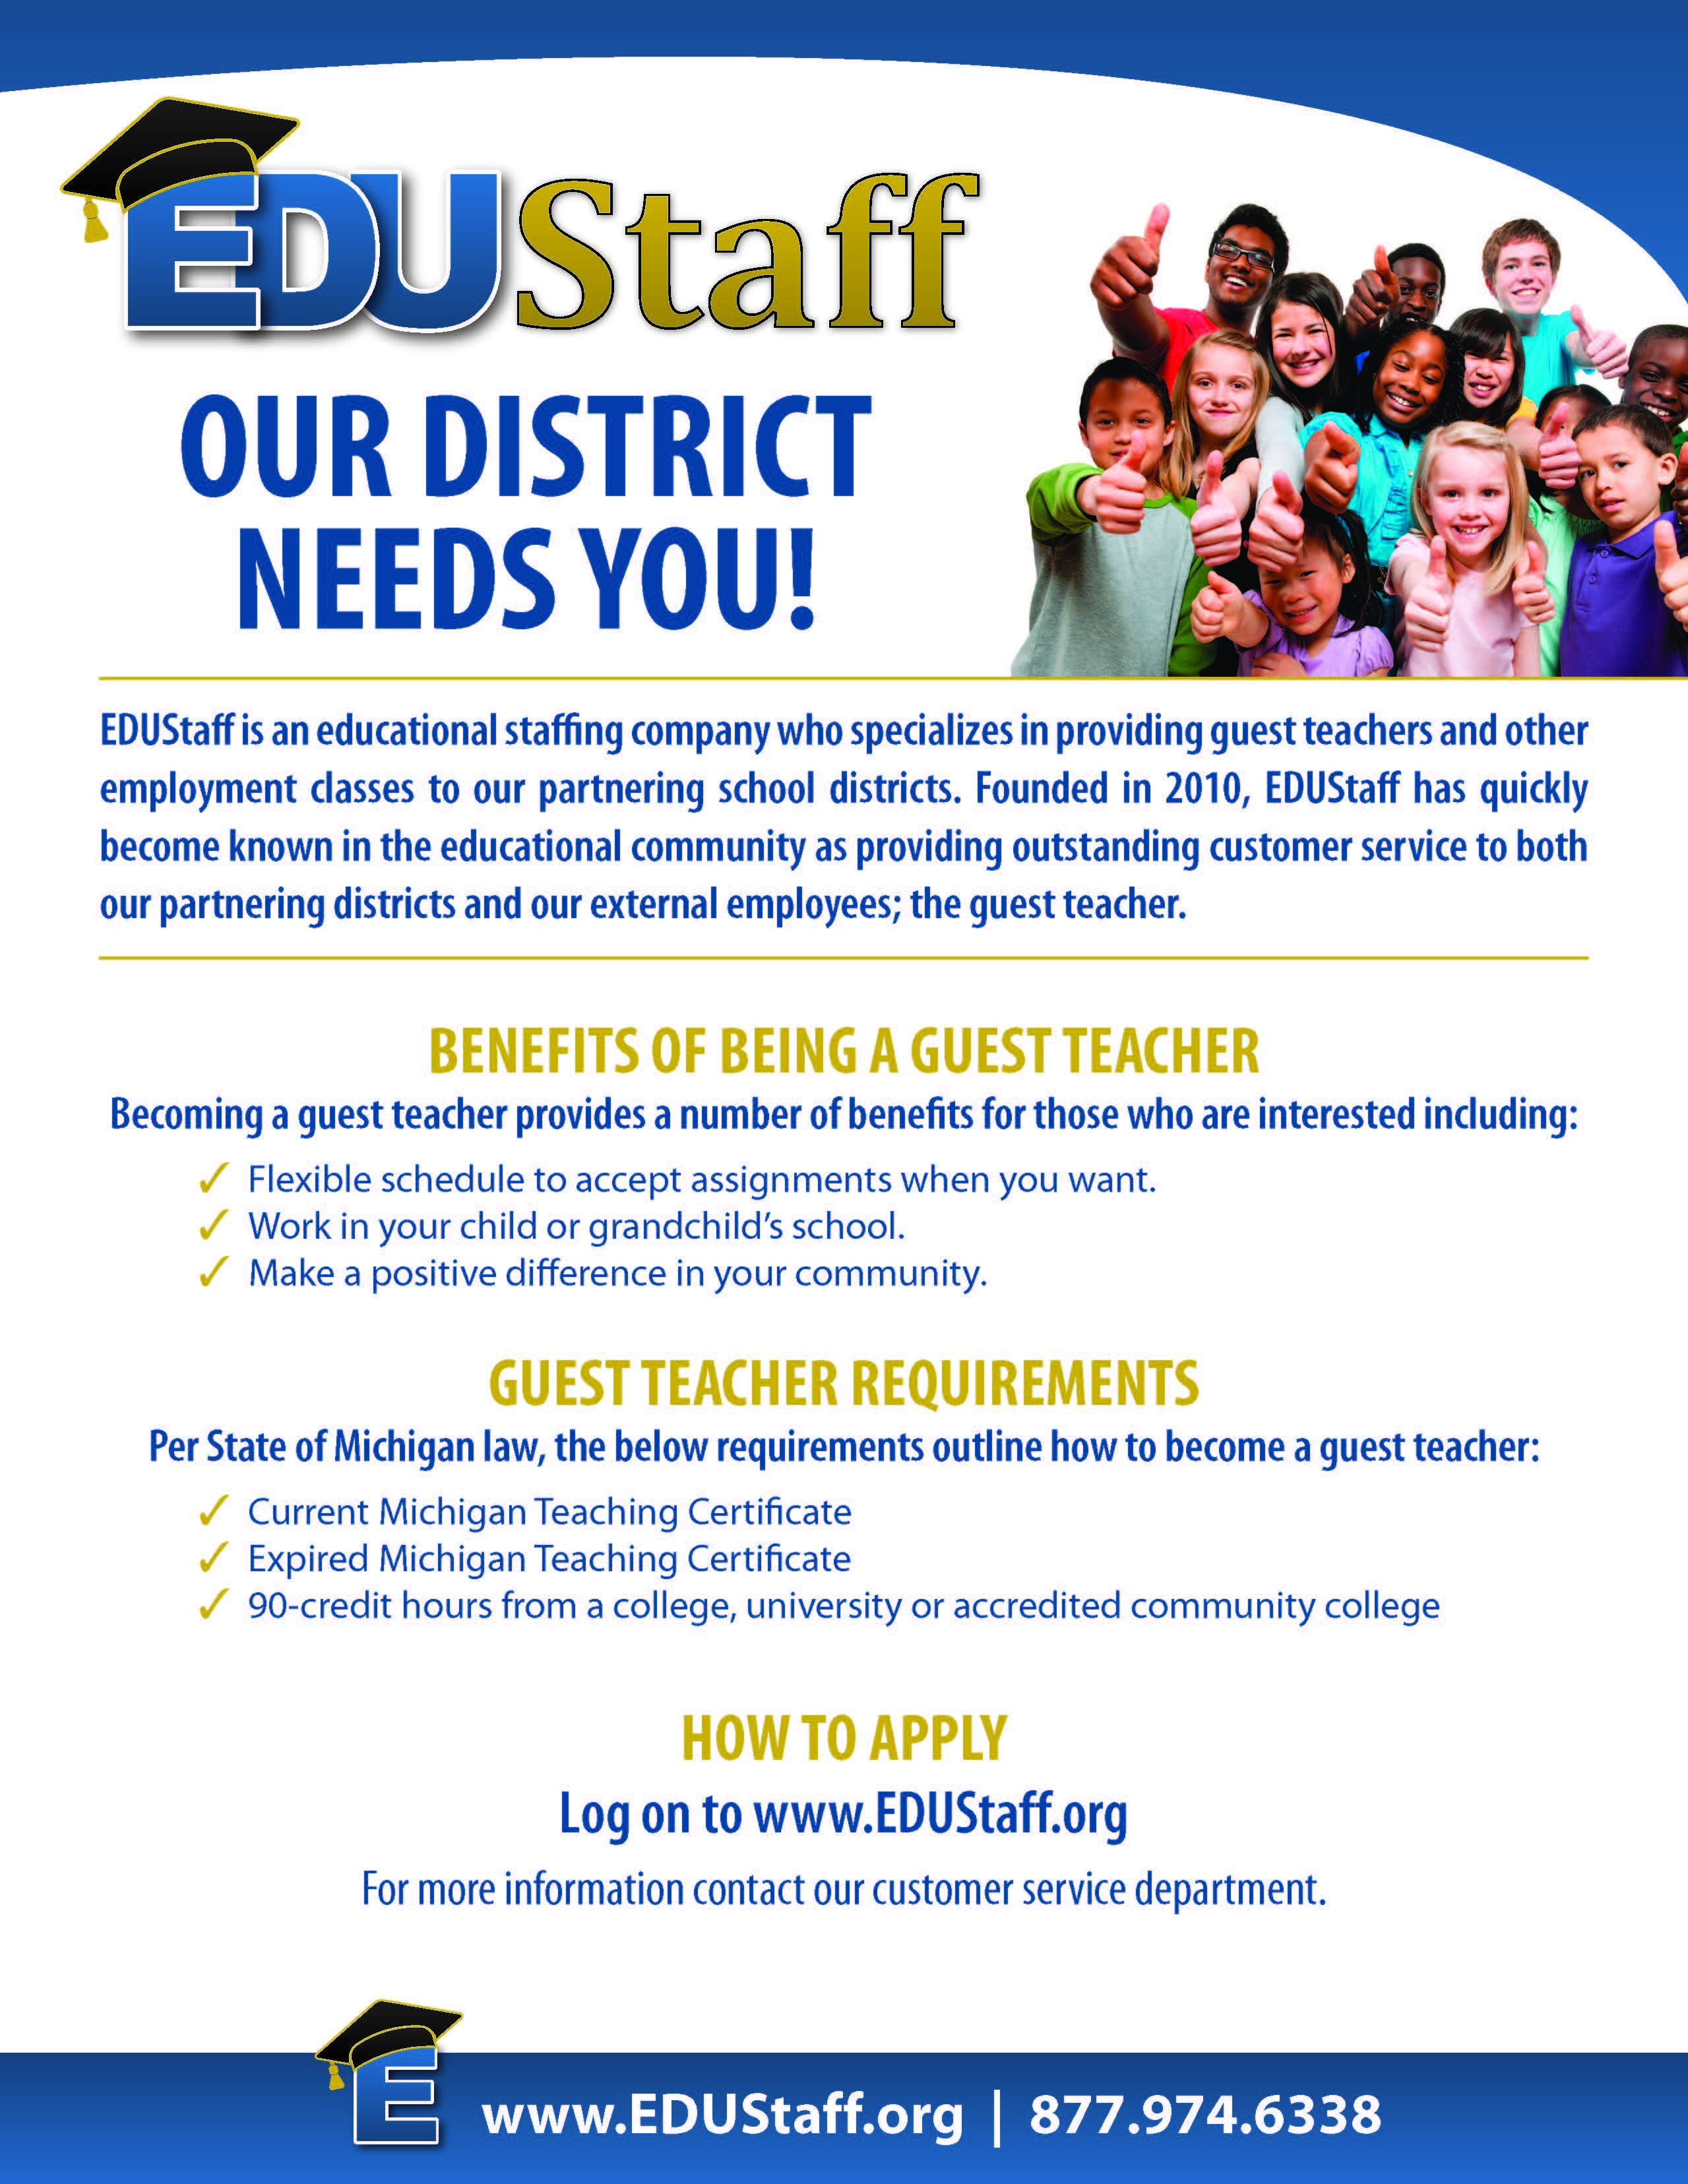 thornapple kellogg school district the flyer contains information about how to become a substitute teacher